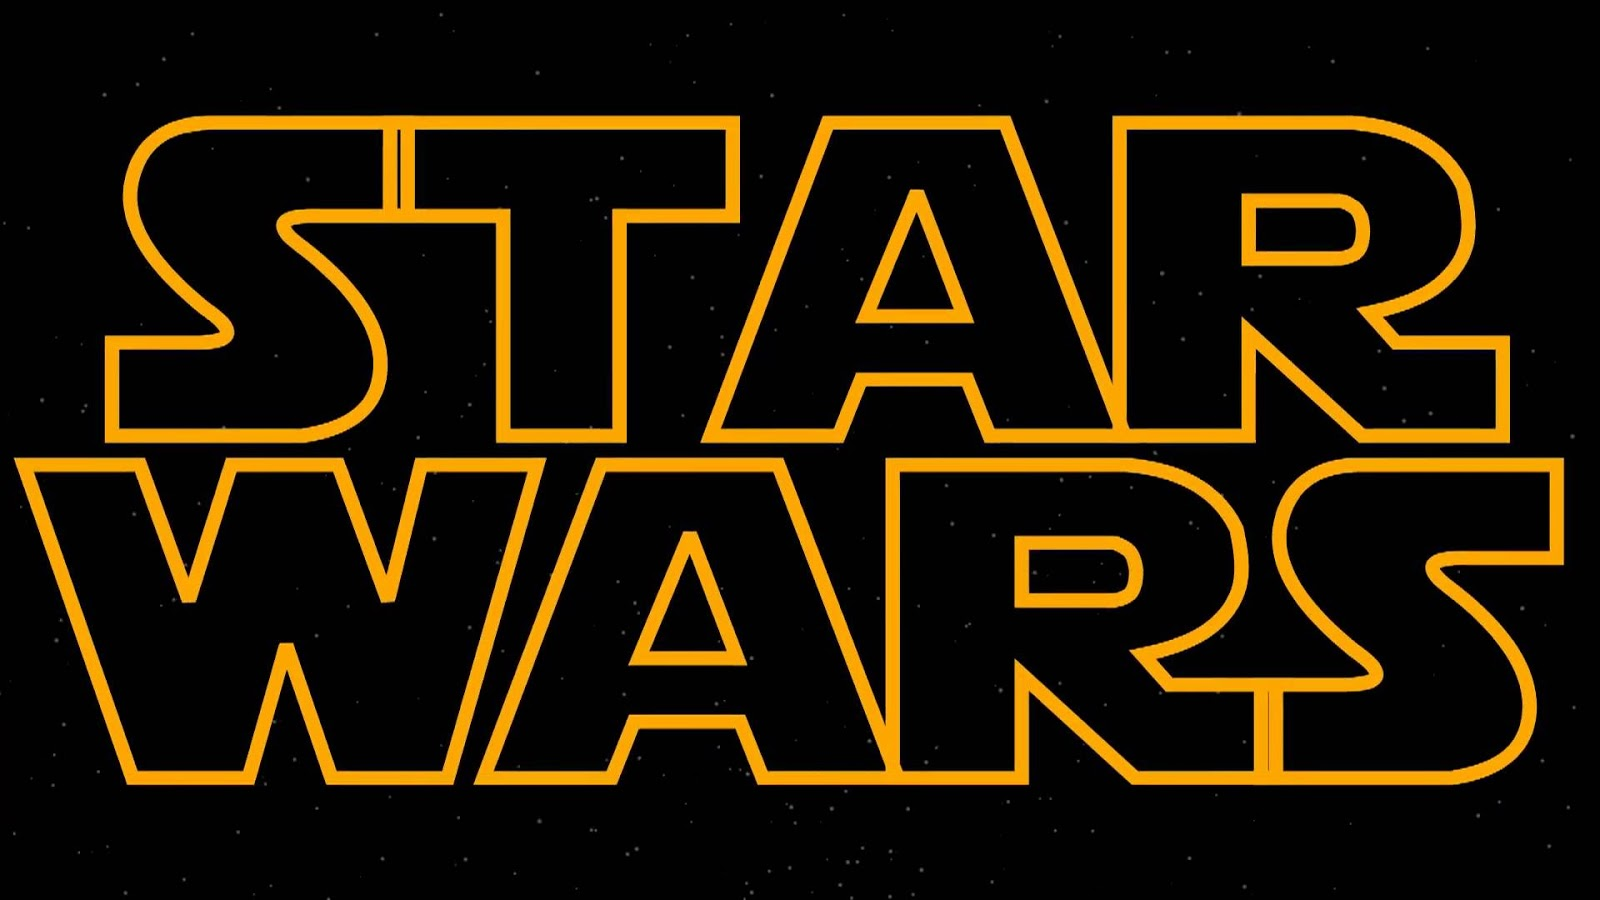 MOVIES: Star Wars: Episode IX - News Roundup *Updated 25th April 2017*